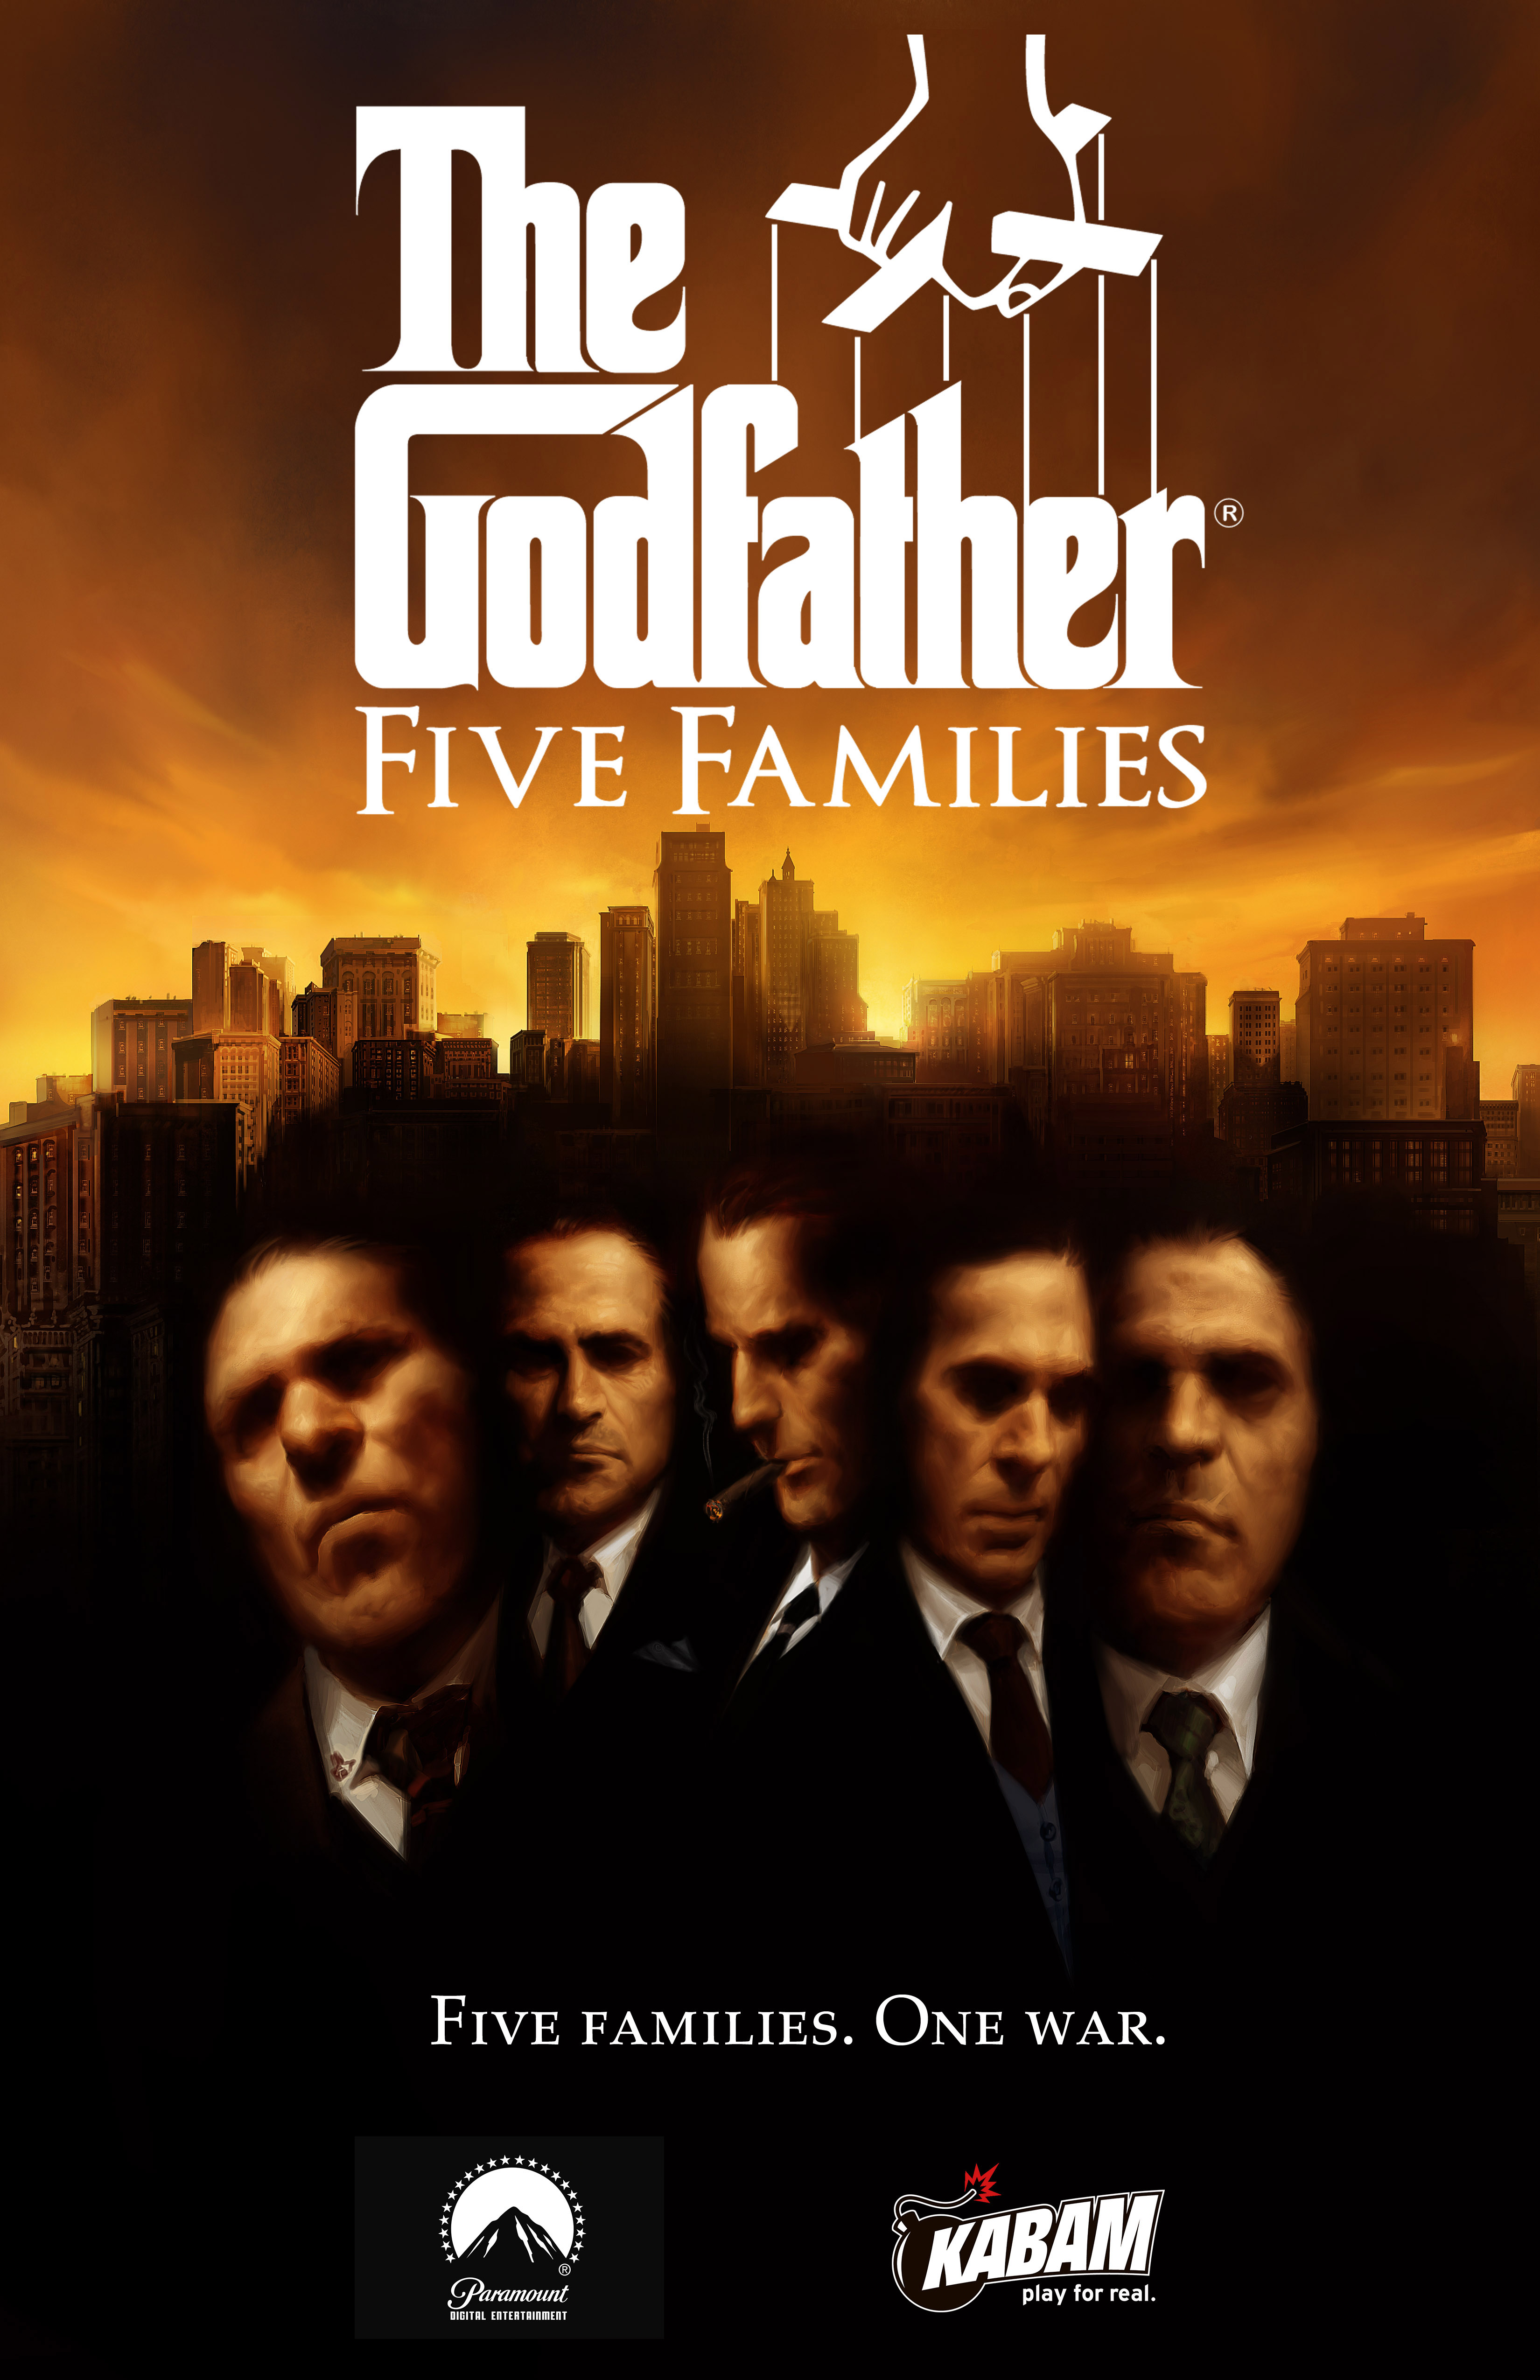 The godfather five families the godfather wiki fandom powered the godfather five families thecheapjerseys Images